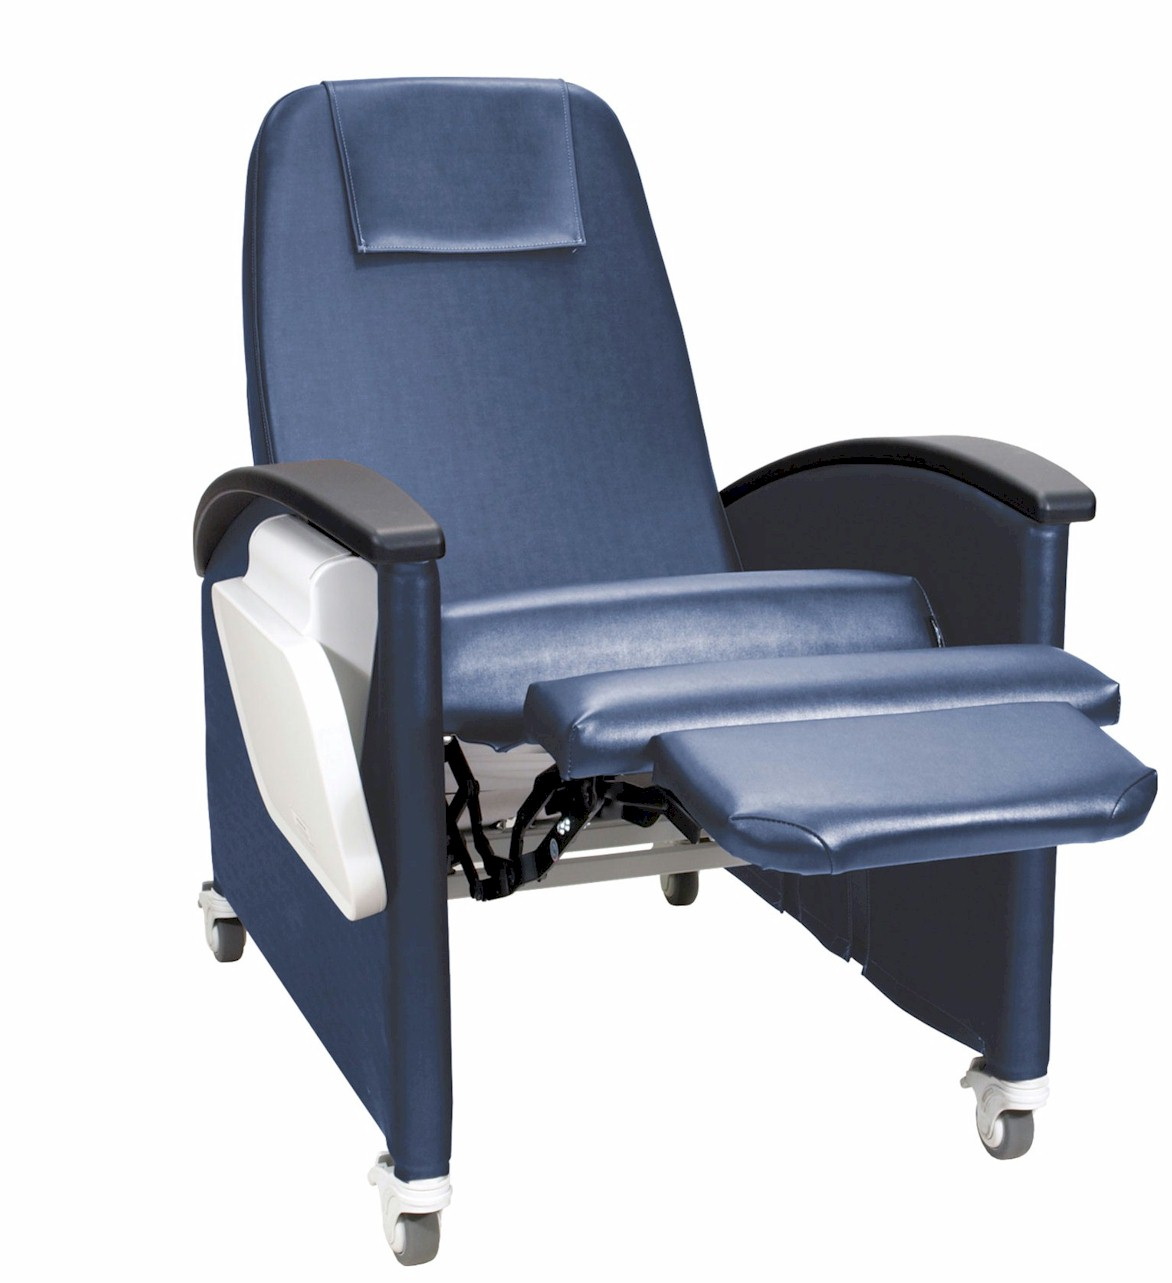 Medical Recliner Chairs 12000 Series Ergonomic Executive Chair Contact Us At 1 800 348 9006 For Pricing